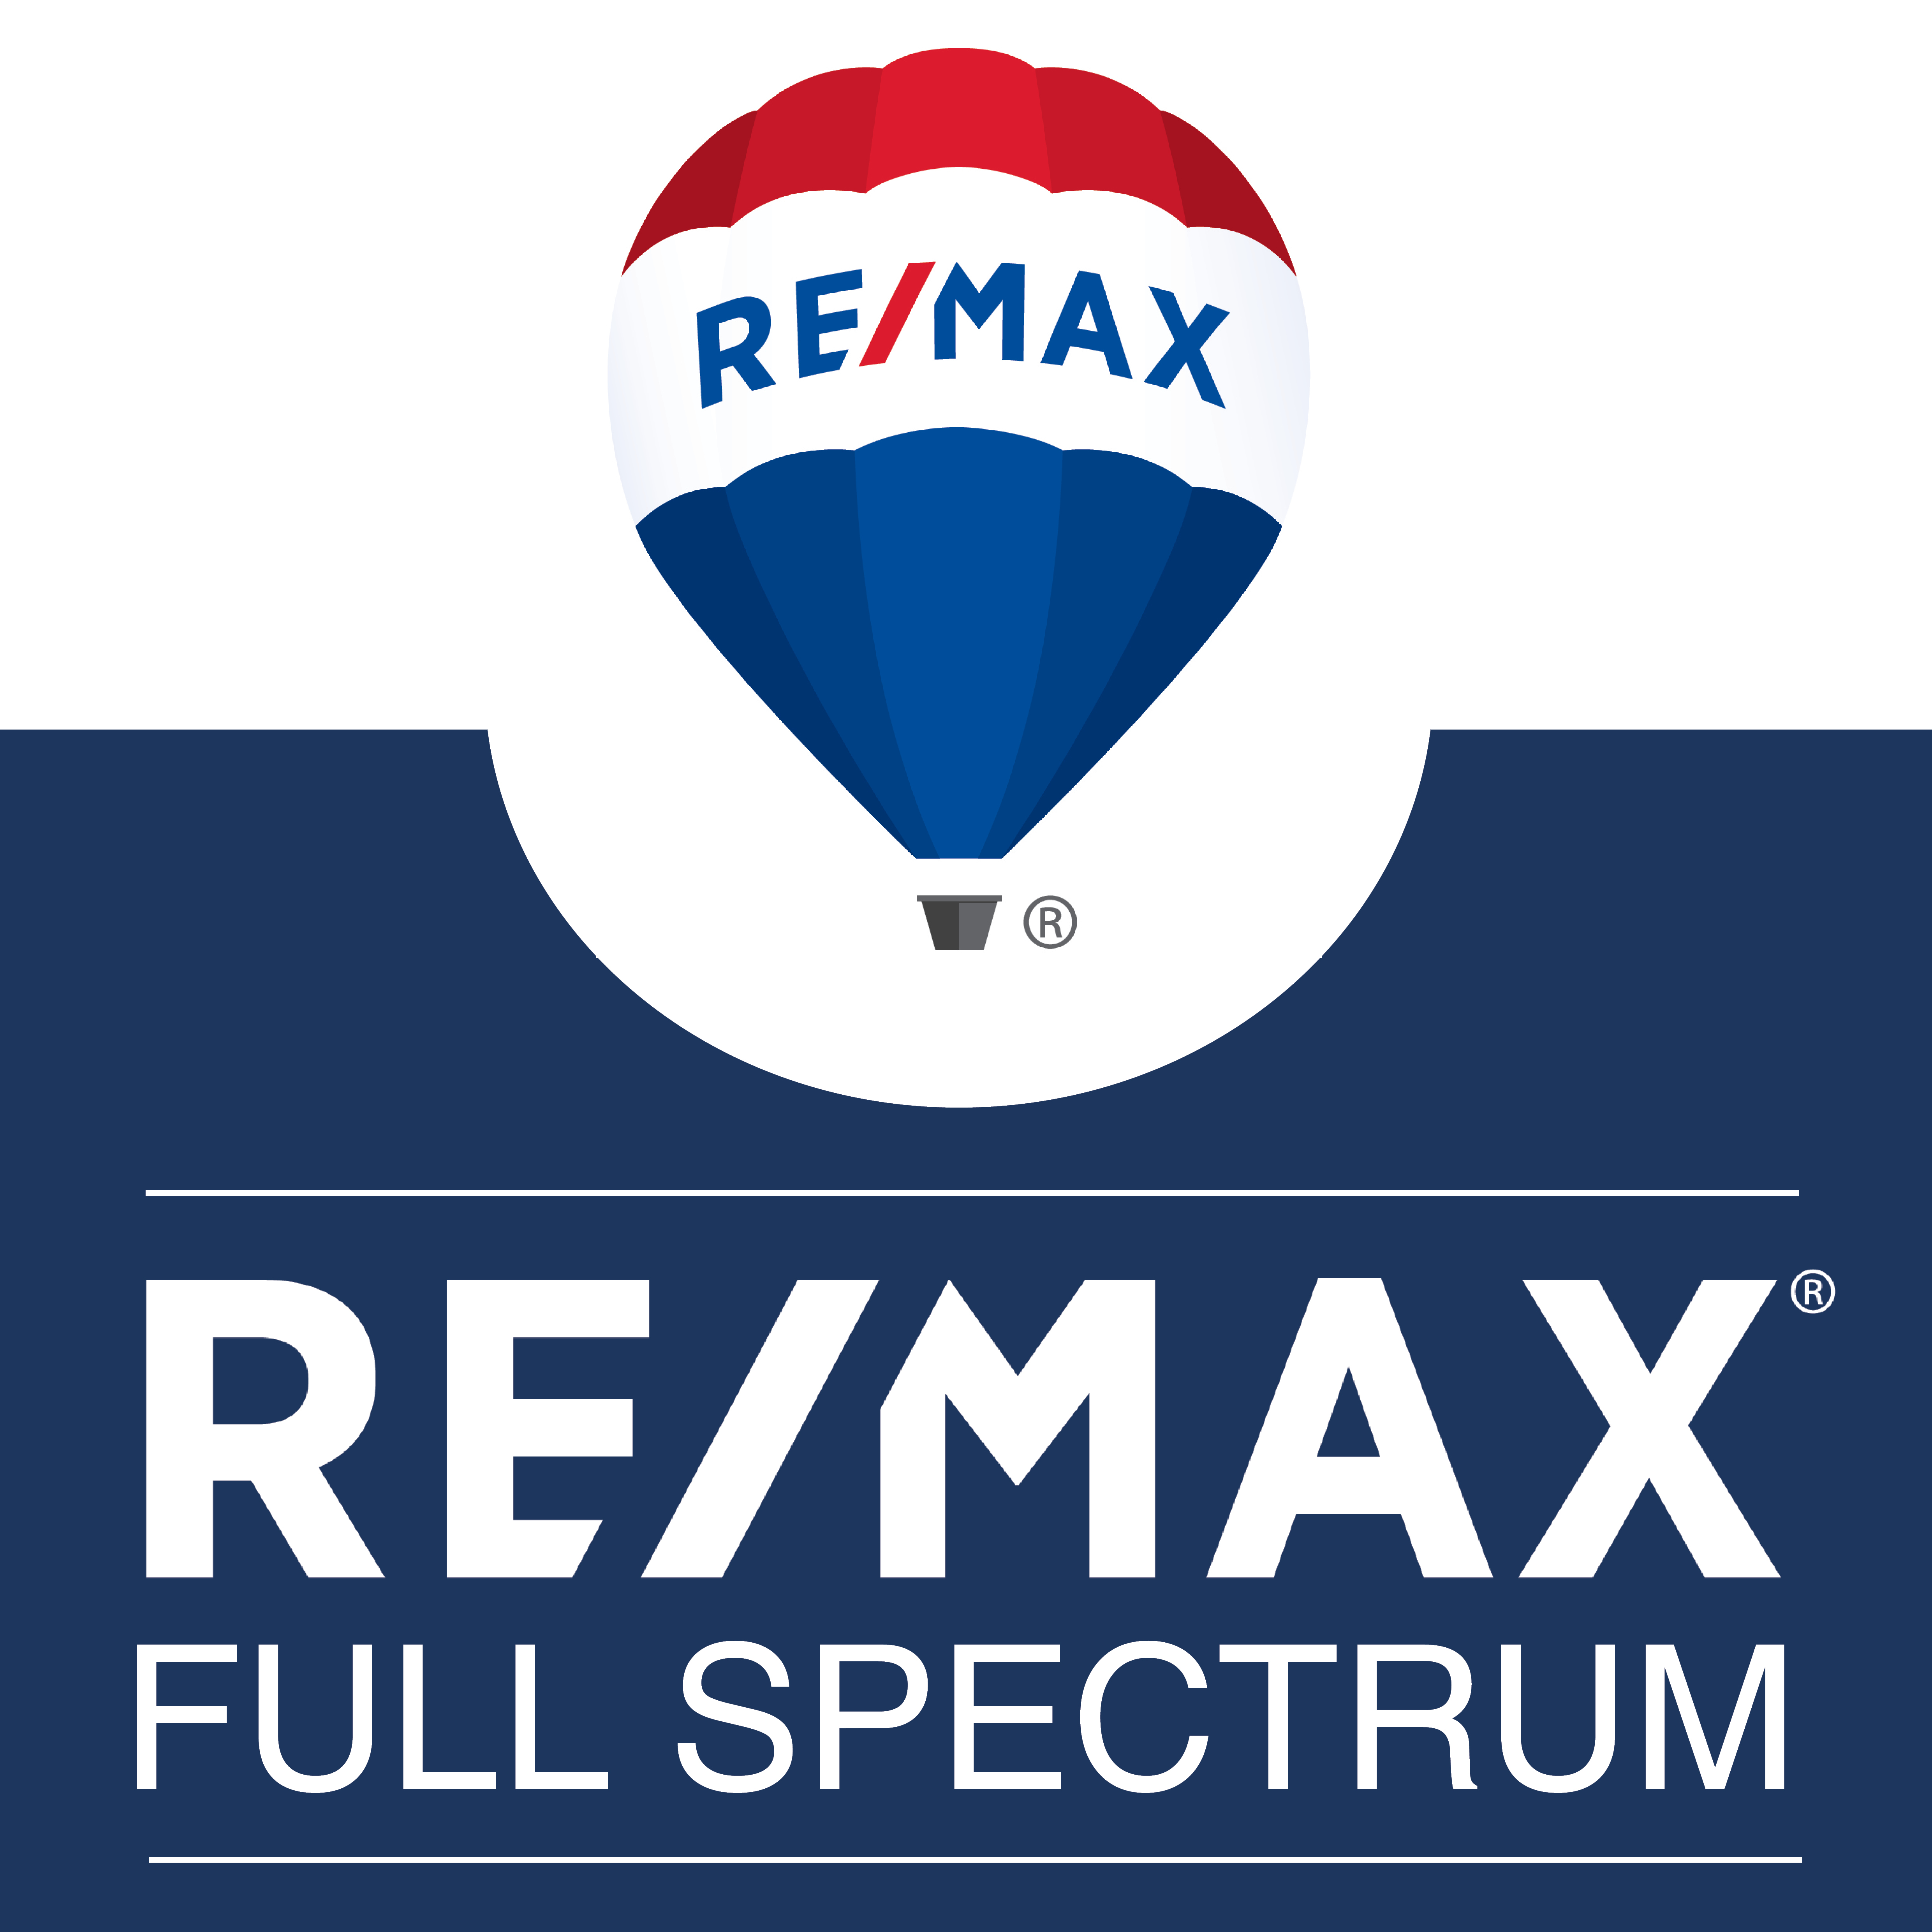 RE/MAX Full Spectrum, Sonoma Real Estate